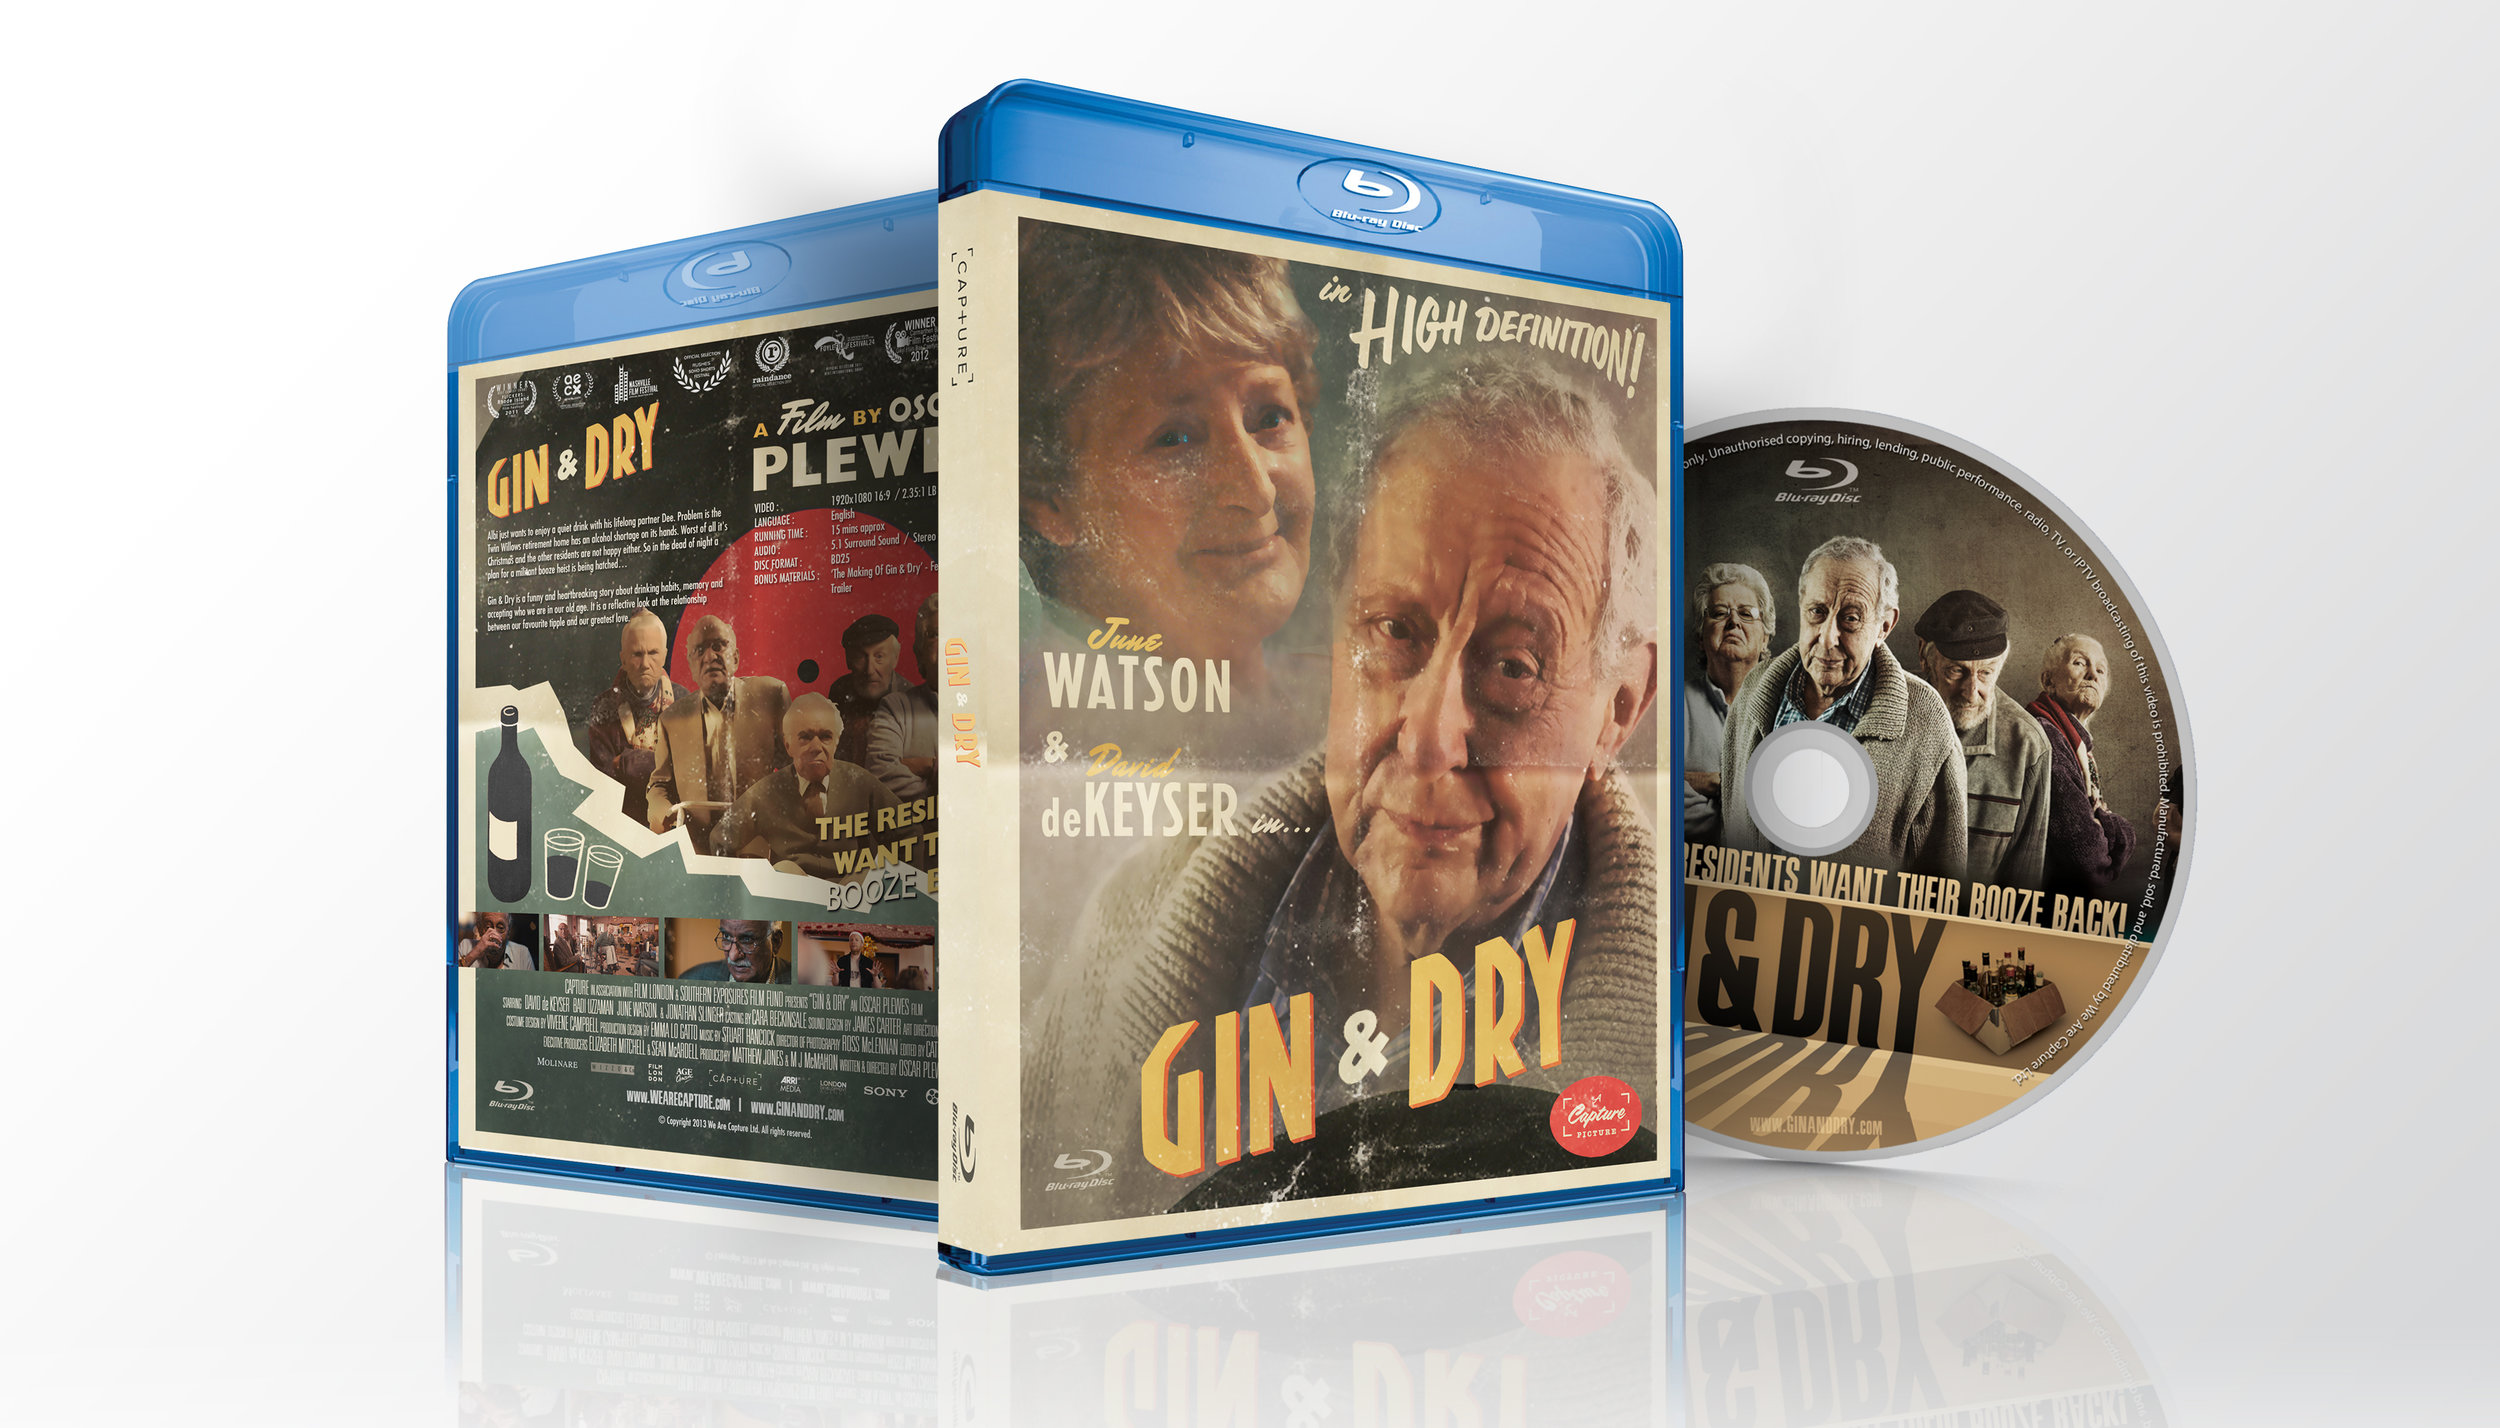 Gin & Dry is available on Blu-ray from the  Capture Shop  and  Amazon